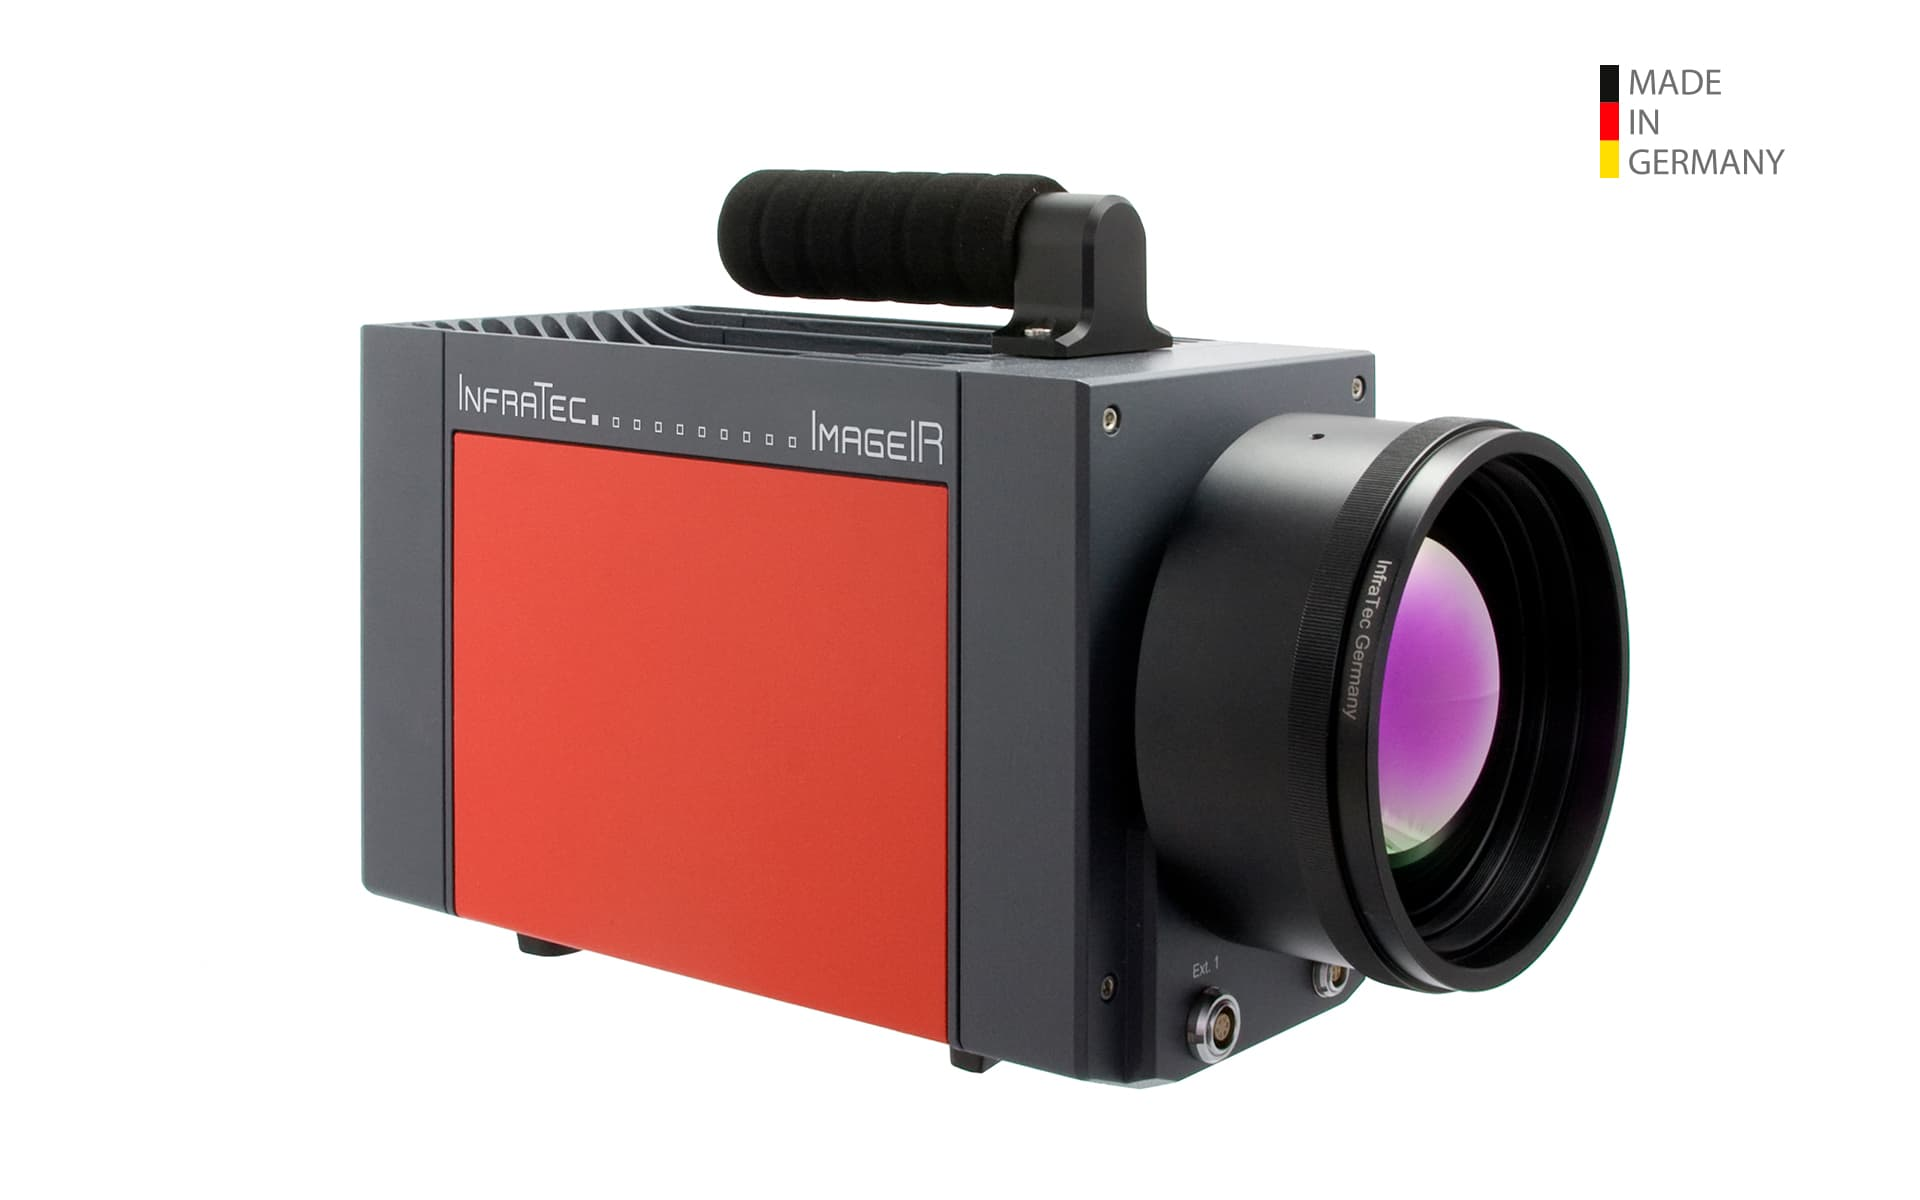 Infrared camera ImageIR® 8300 Series from InfraTec